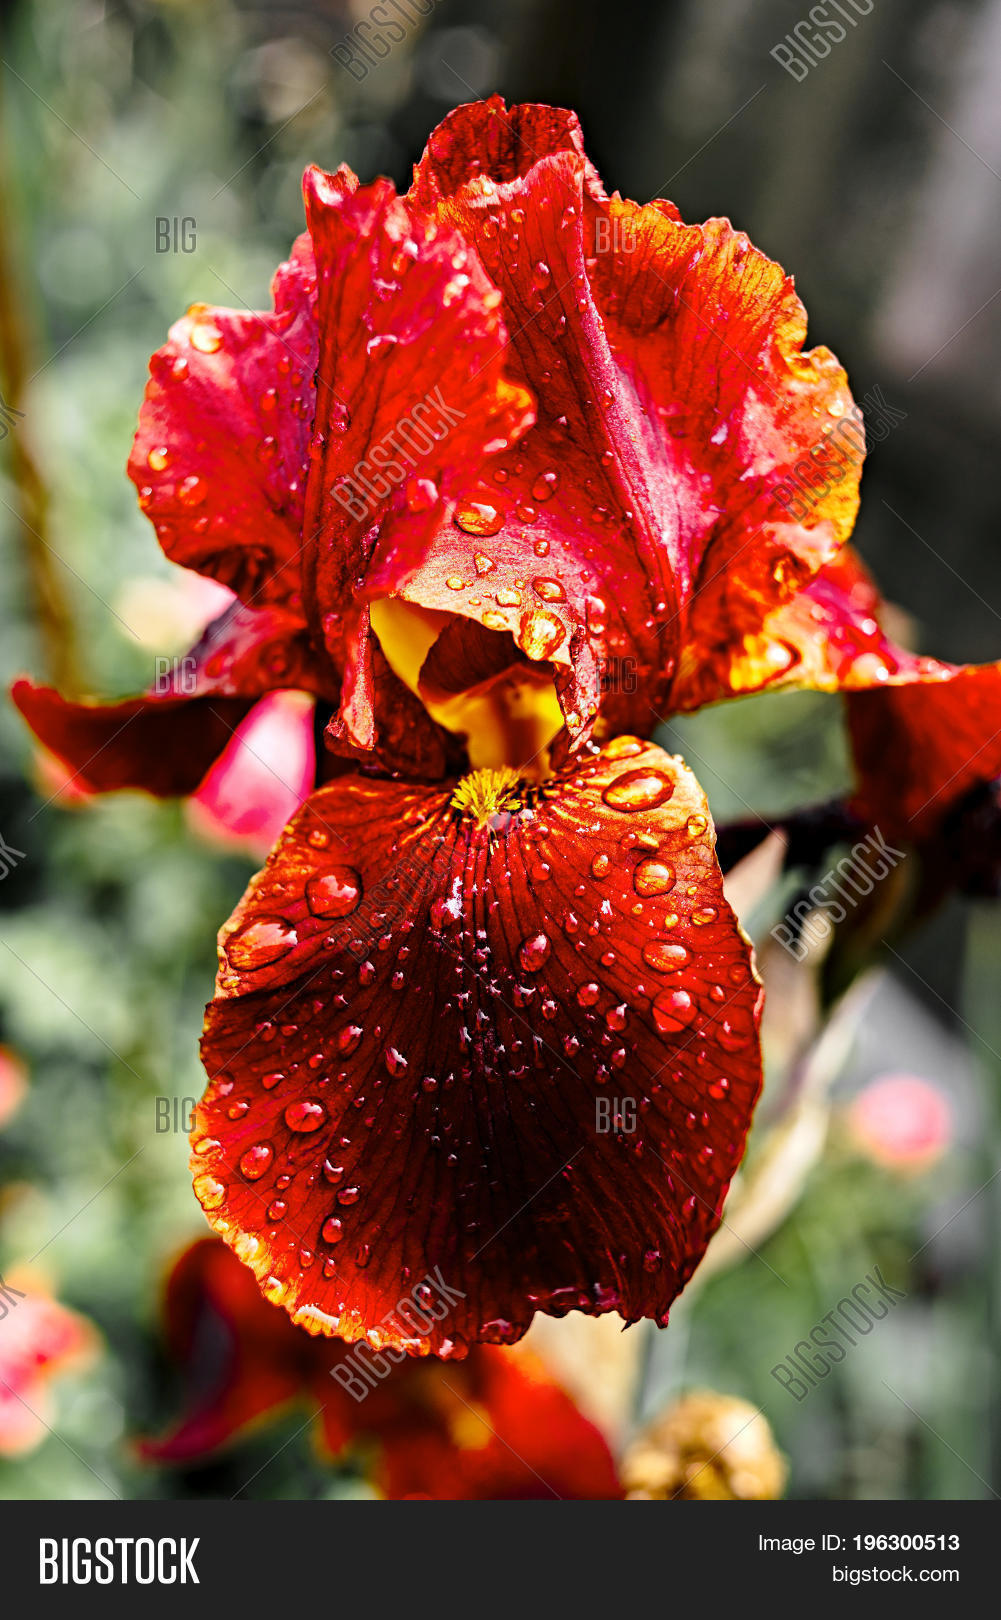 Bright Red Iris Flower Image Photo Free Trial Bigstock